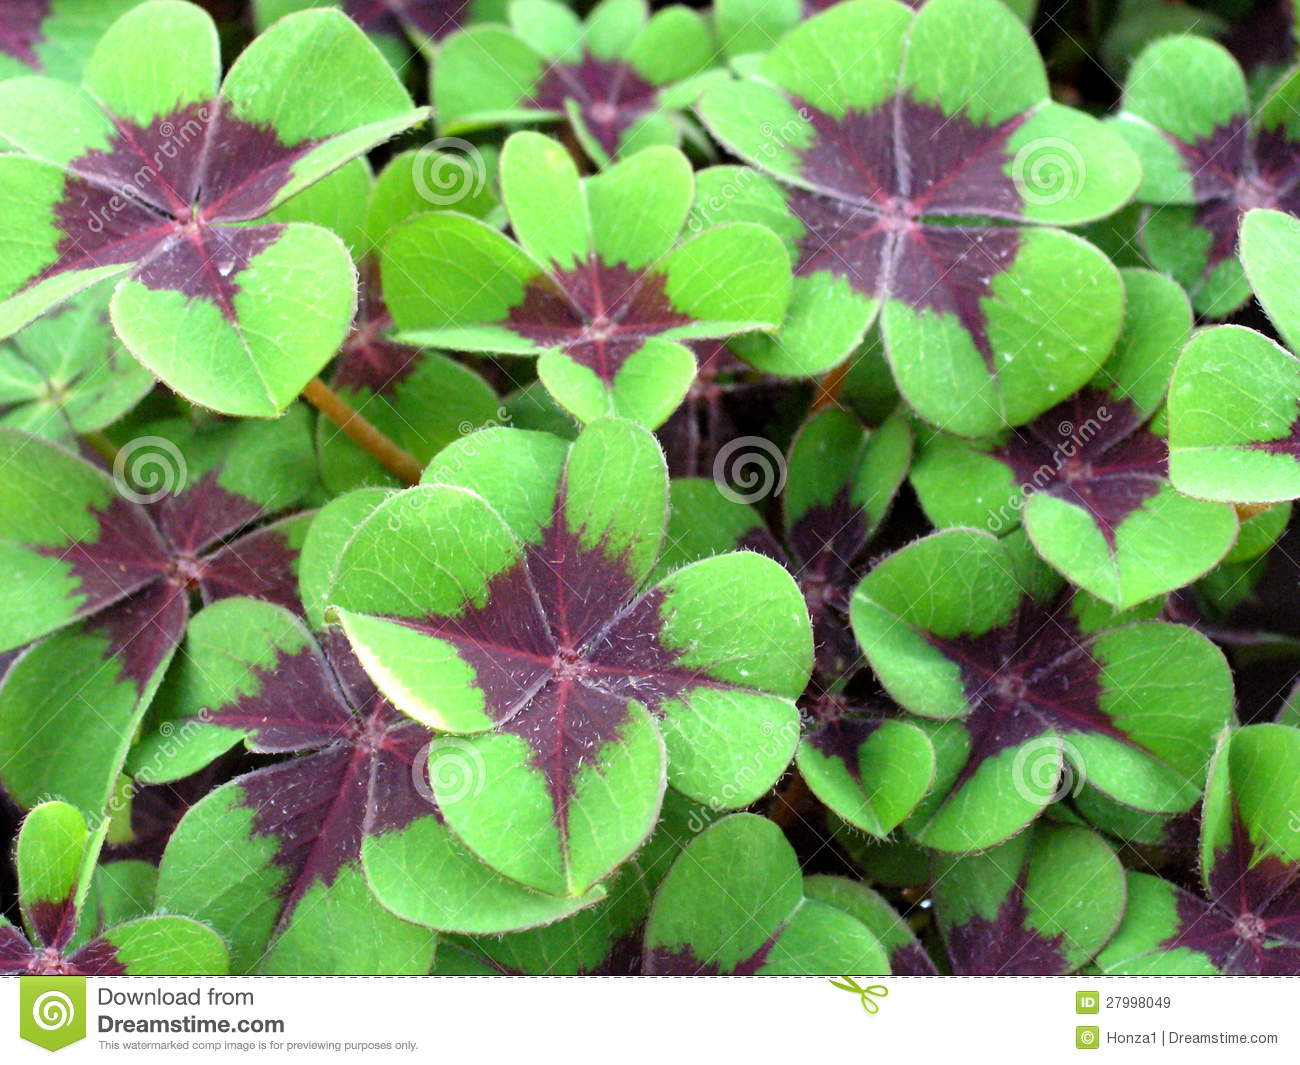 Oxalis deppei royalty free stock images image 27998049